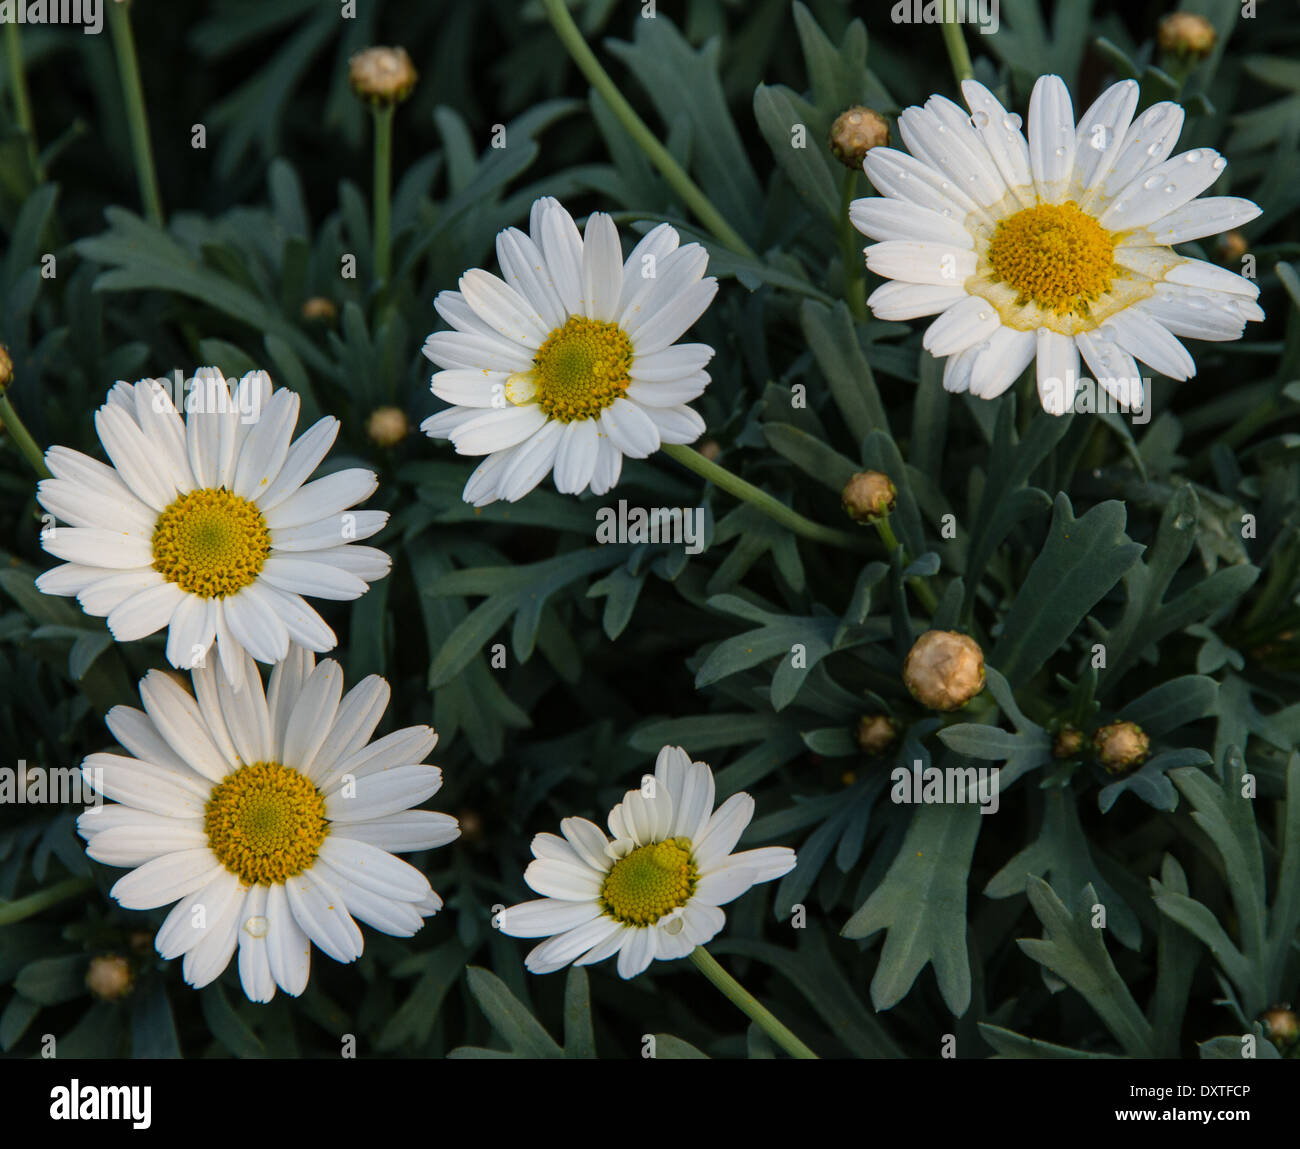 Background of white flowers and daisies from the florist for sale background of white flowers and daisies from the florist for sale izmirmasajfo Images